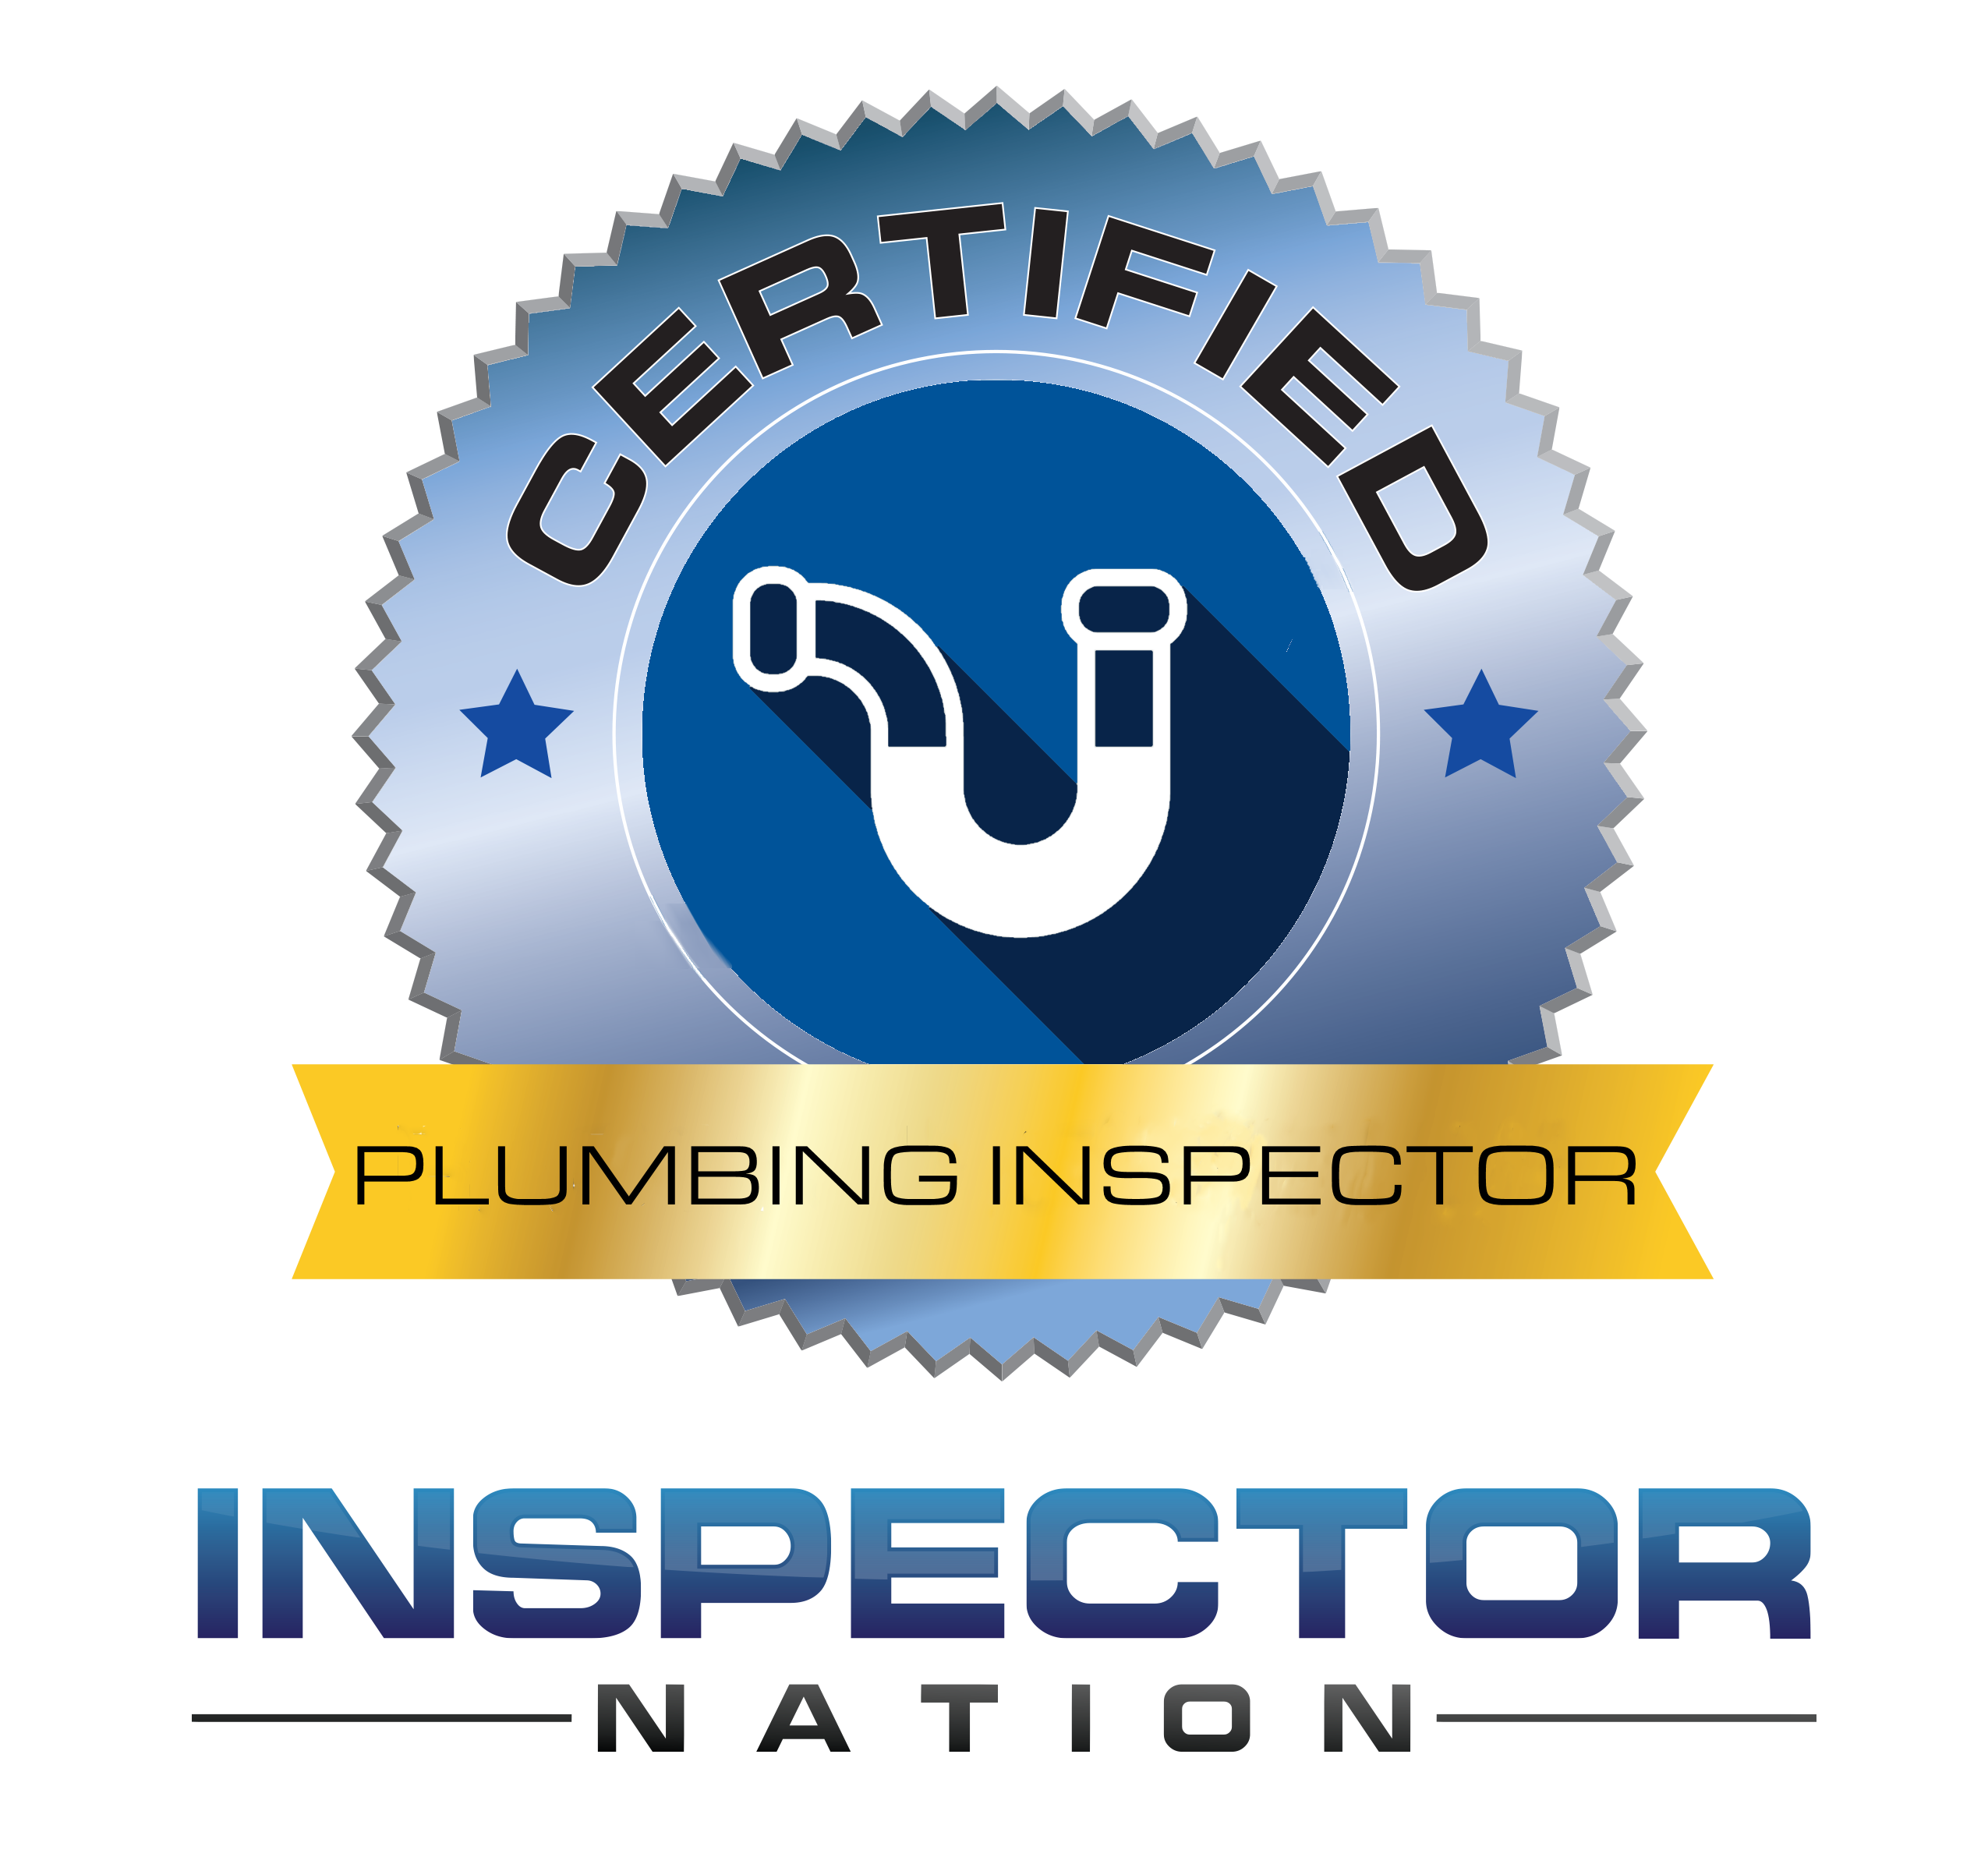 plumbing inspector inspector nation certified home inspector badge emblem icon